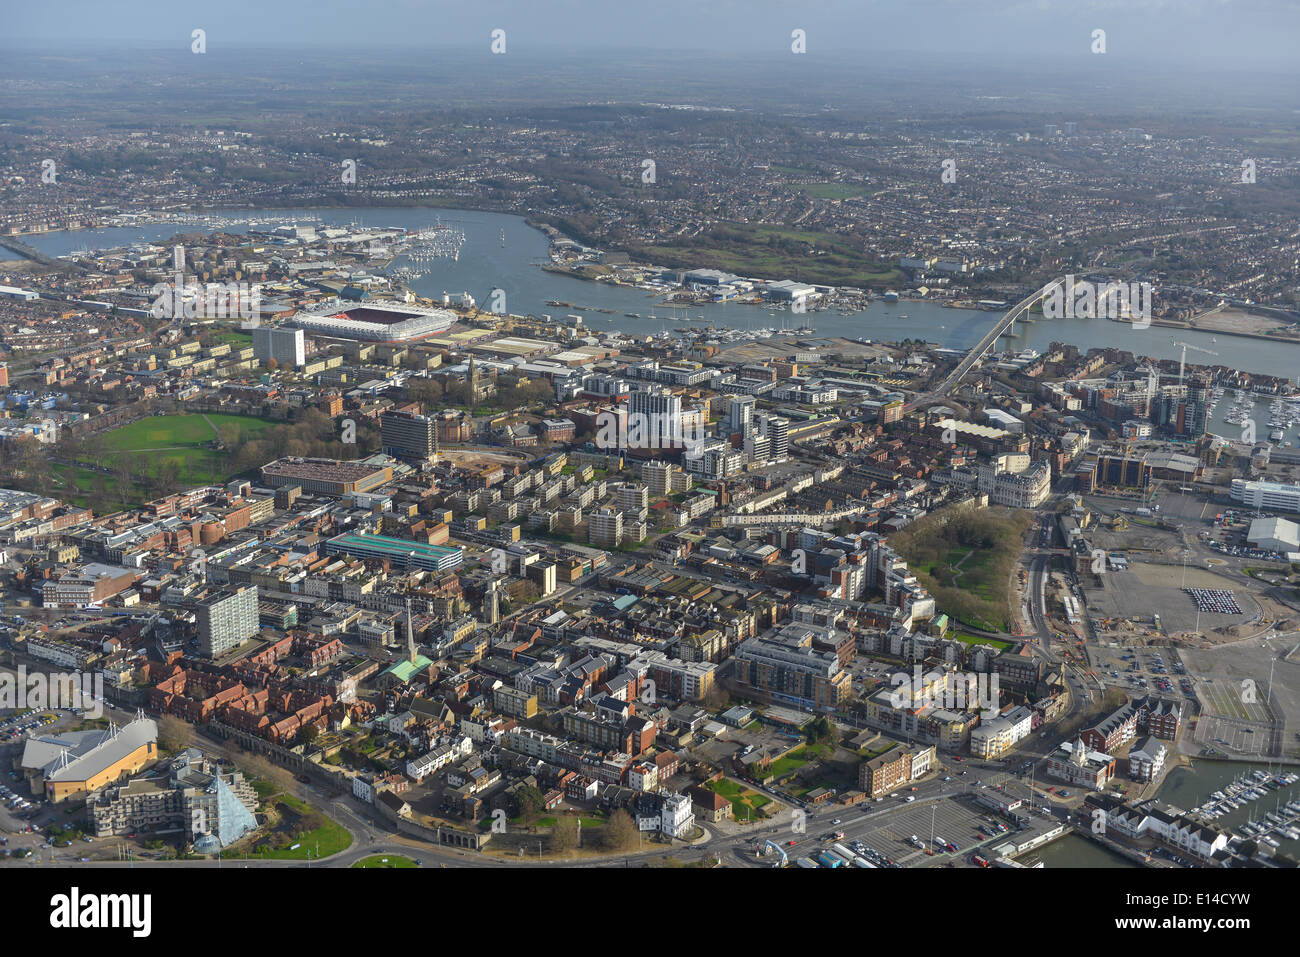 A view looking east over central Southampton showing the River Itchen and football ground - Stock Image